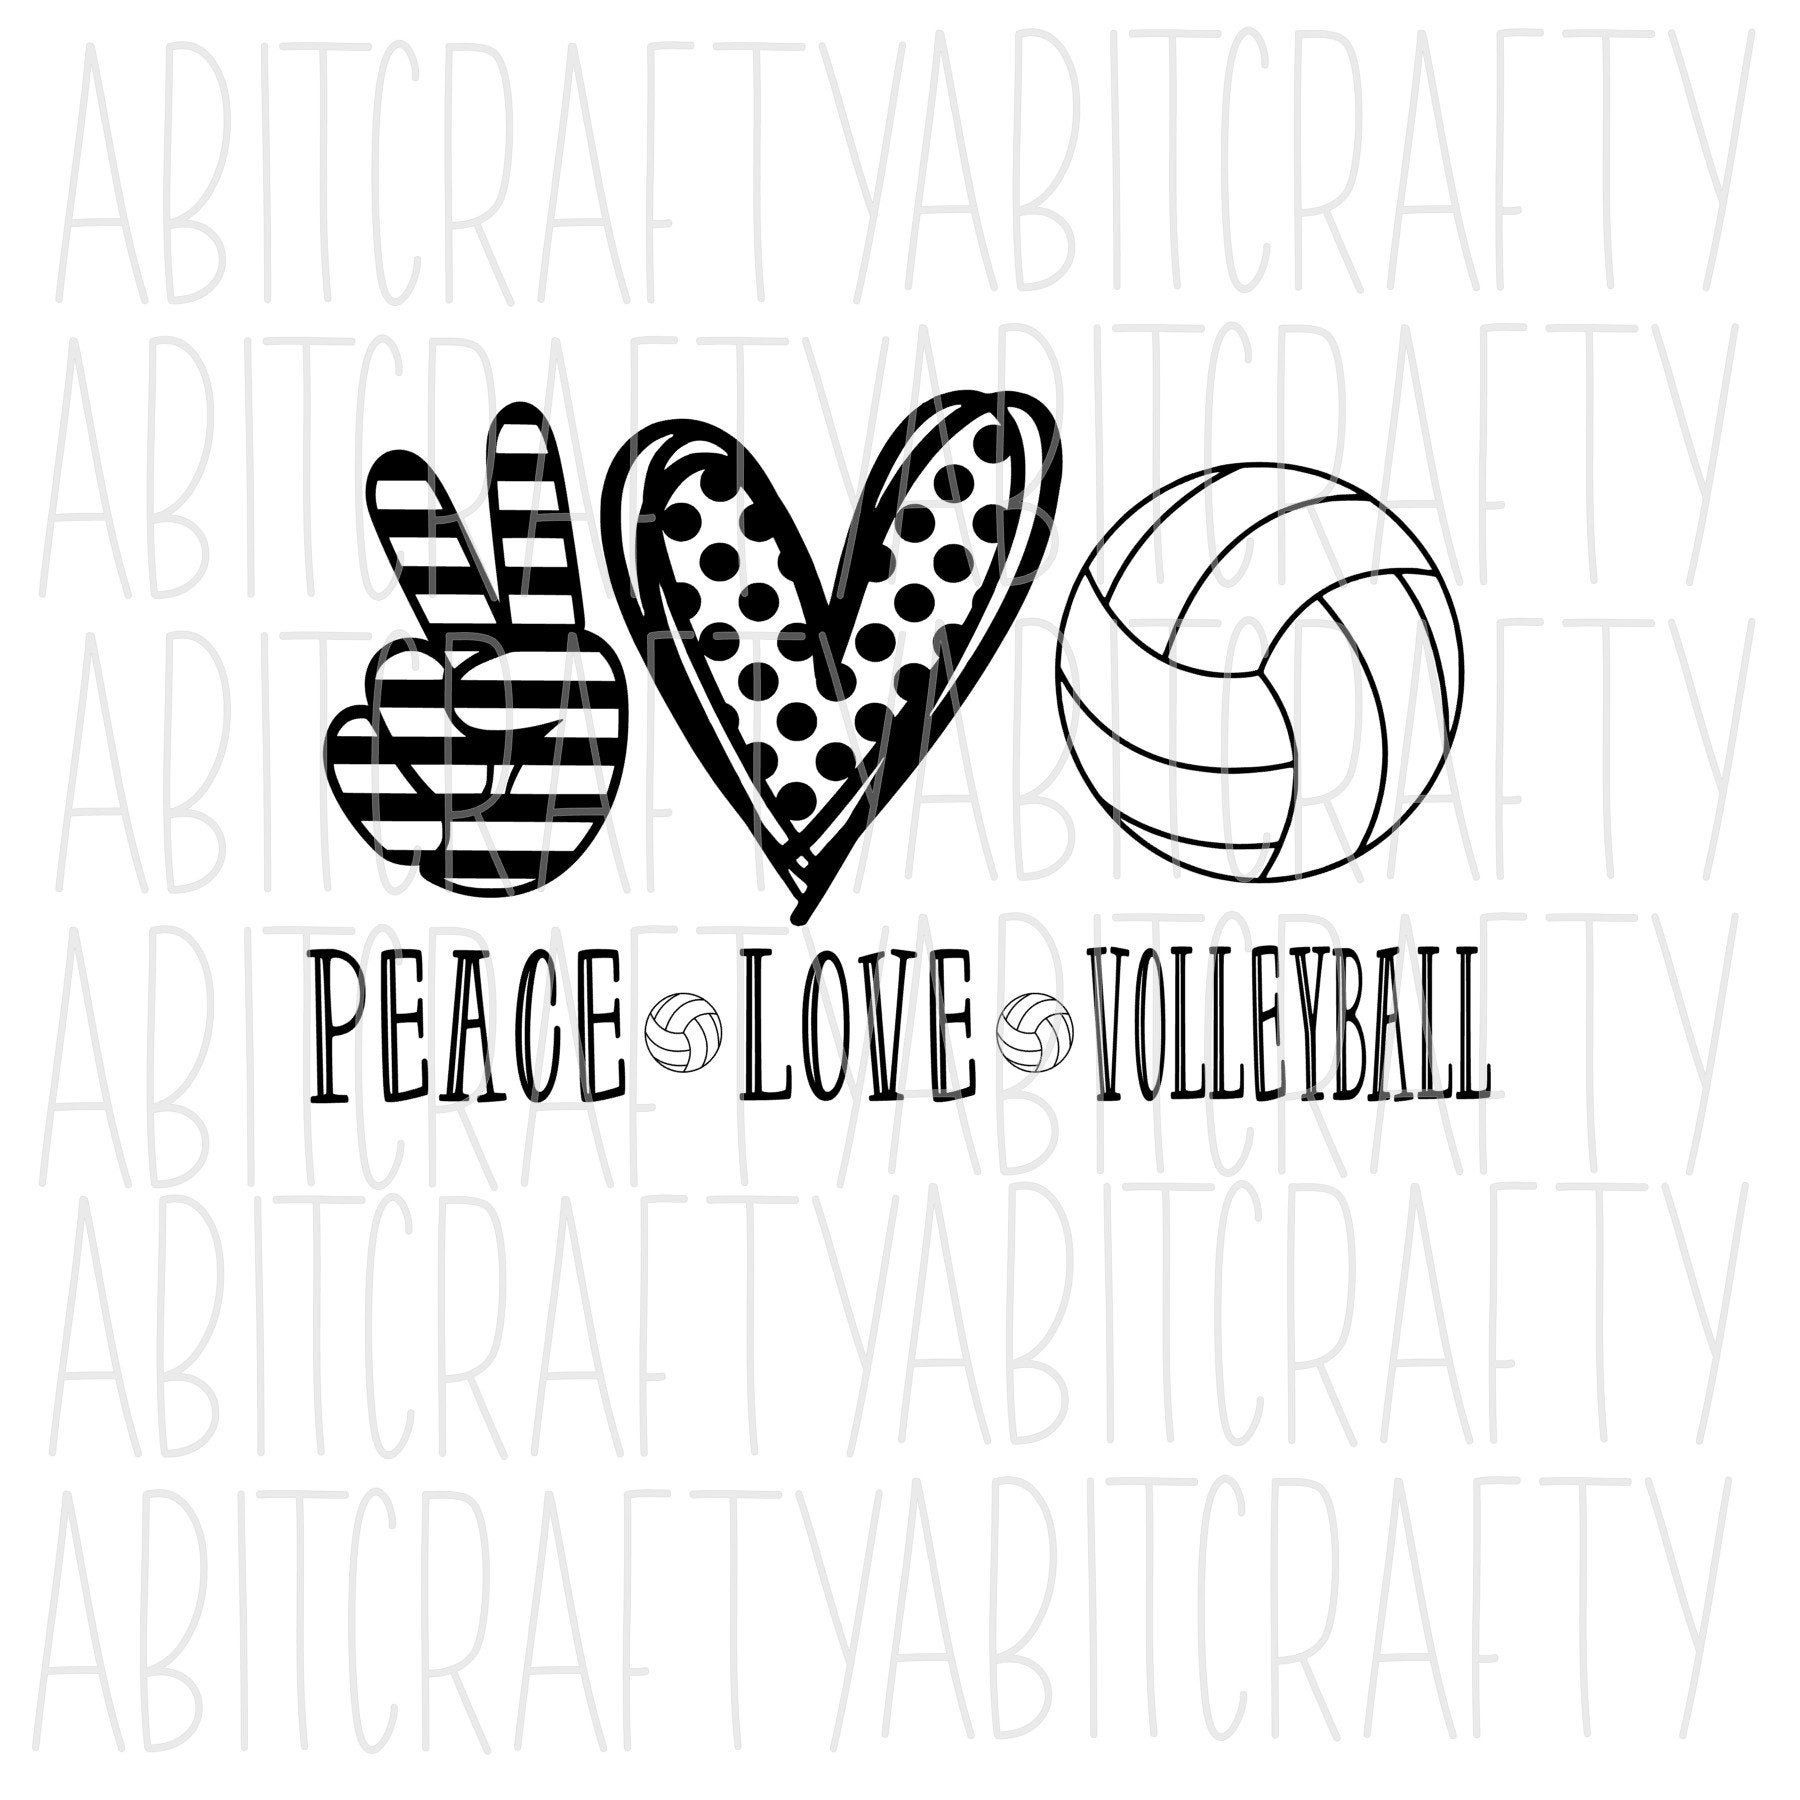 Peace Love Volleyball Png Svg Sublimation Digital Download Cricut Silhouette Vector Art In 2020 Peace And Love Vector Art Volleyball